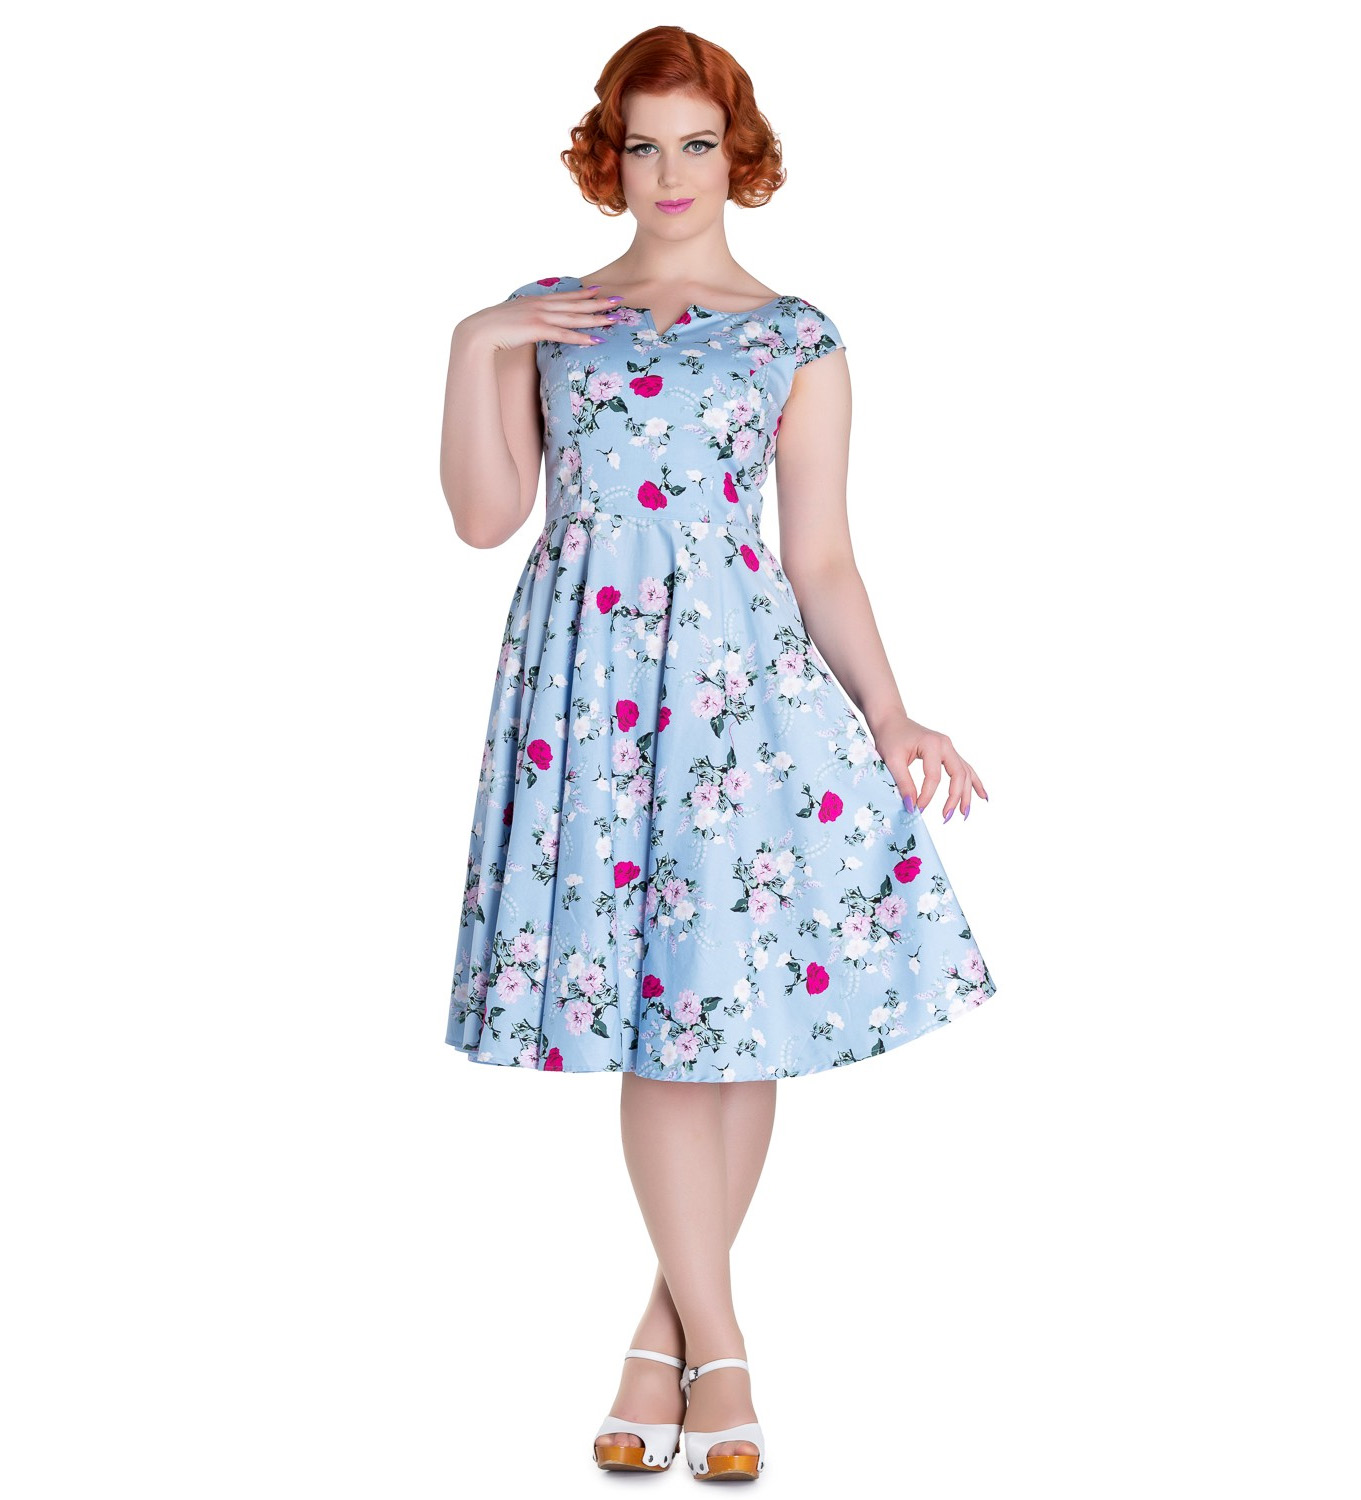 Hell-Bunny-50s-Dress-Floral-BELINDA-Rockabilly-Pin-Up-Vintage-Blue thumbnail 7